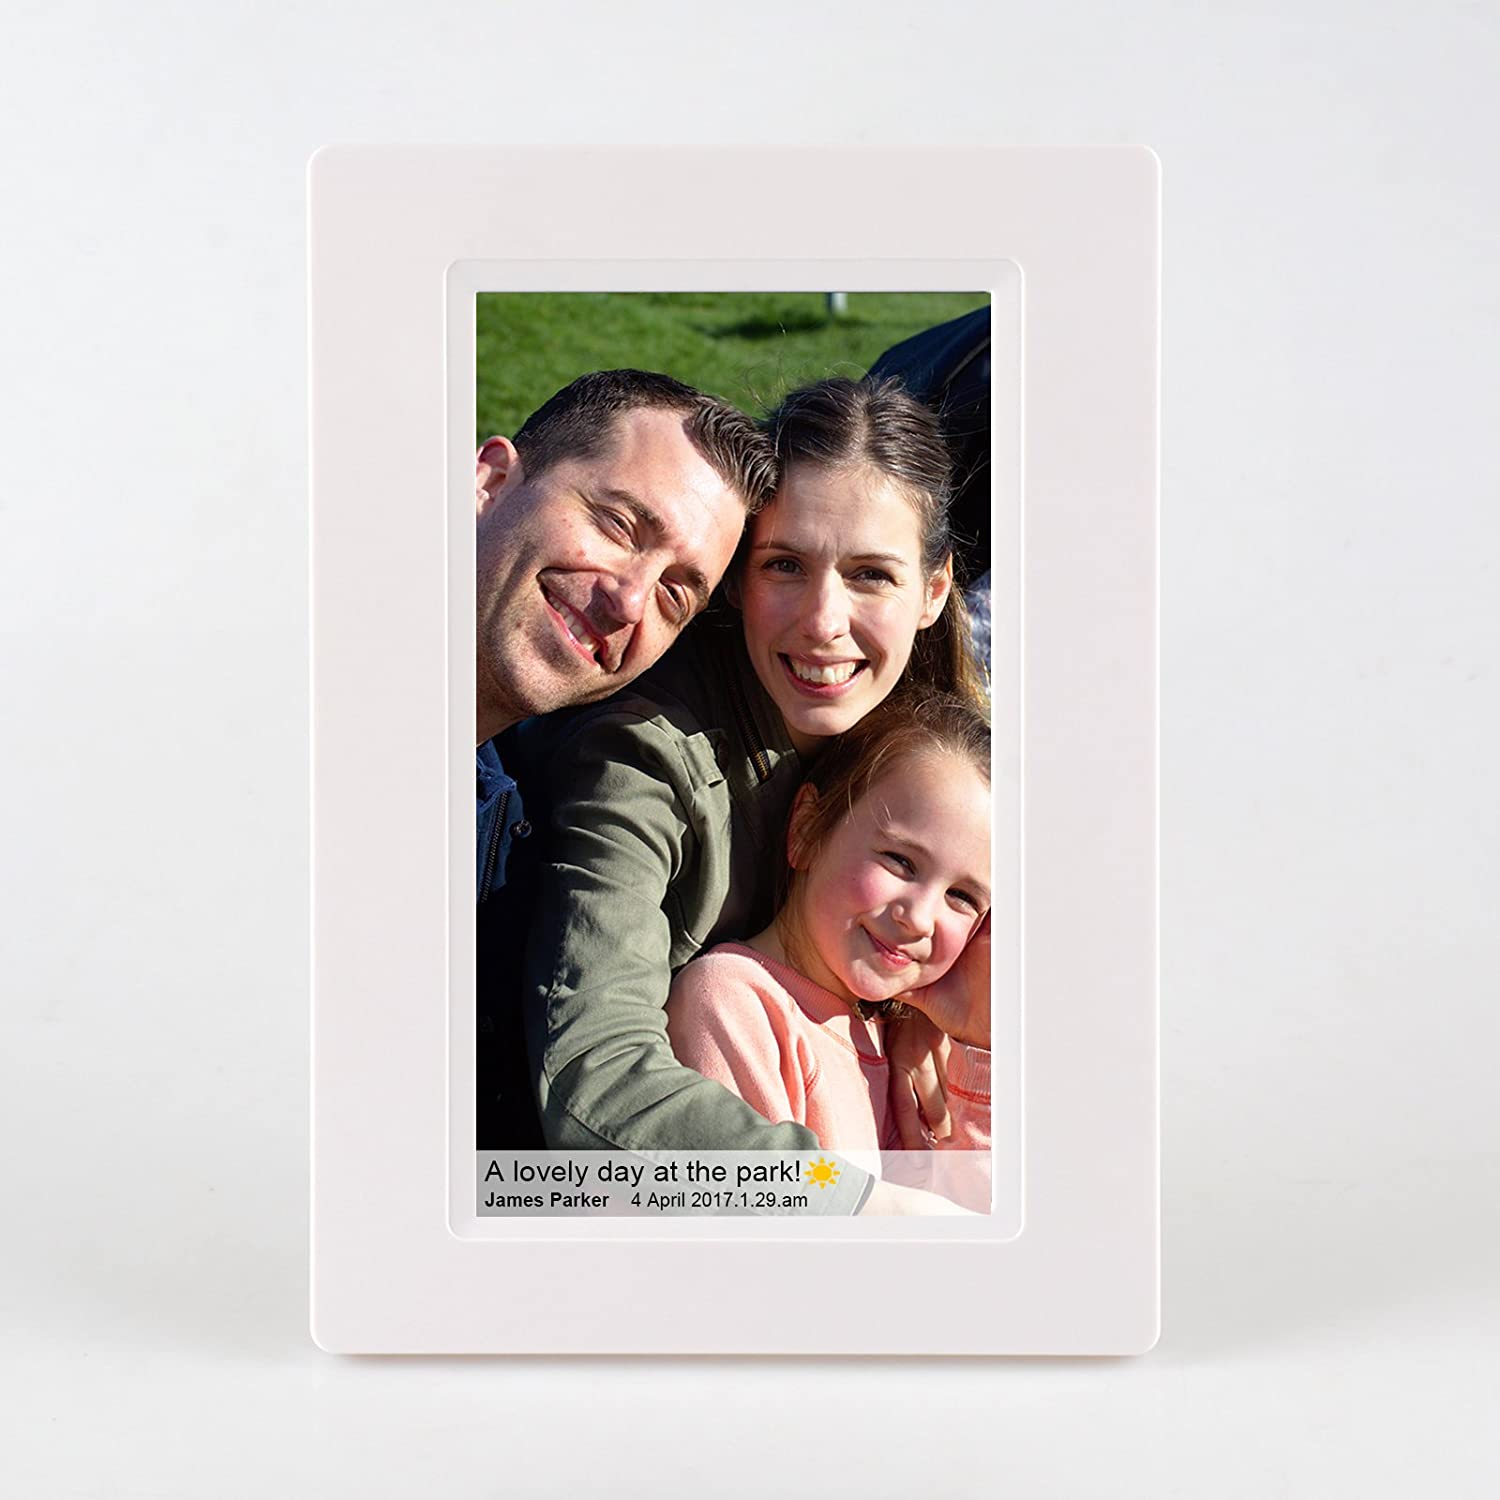 Feelcare 7 Inch Smart Wifi Digital Picture Frame With Touch Screen Photo Ips Lcd Panel